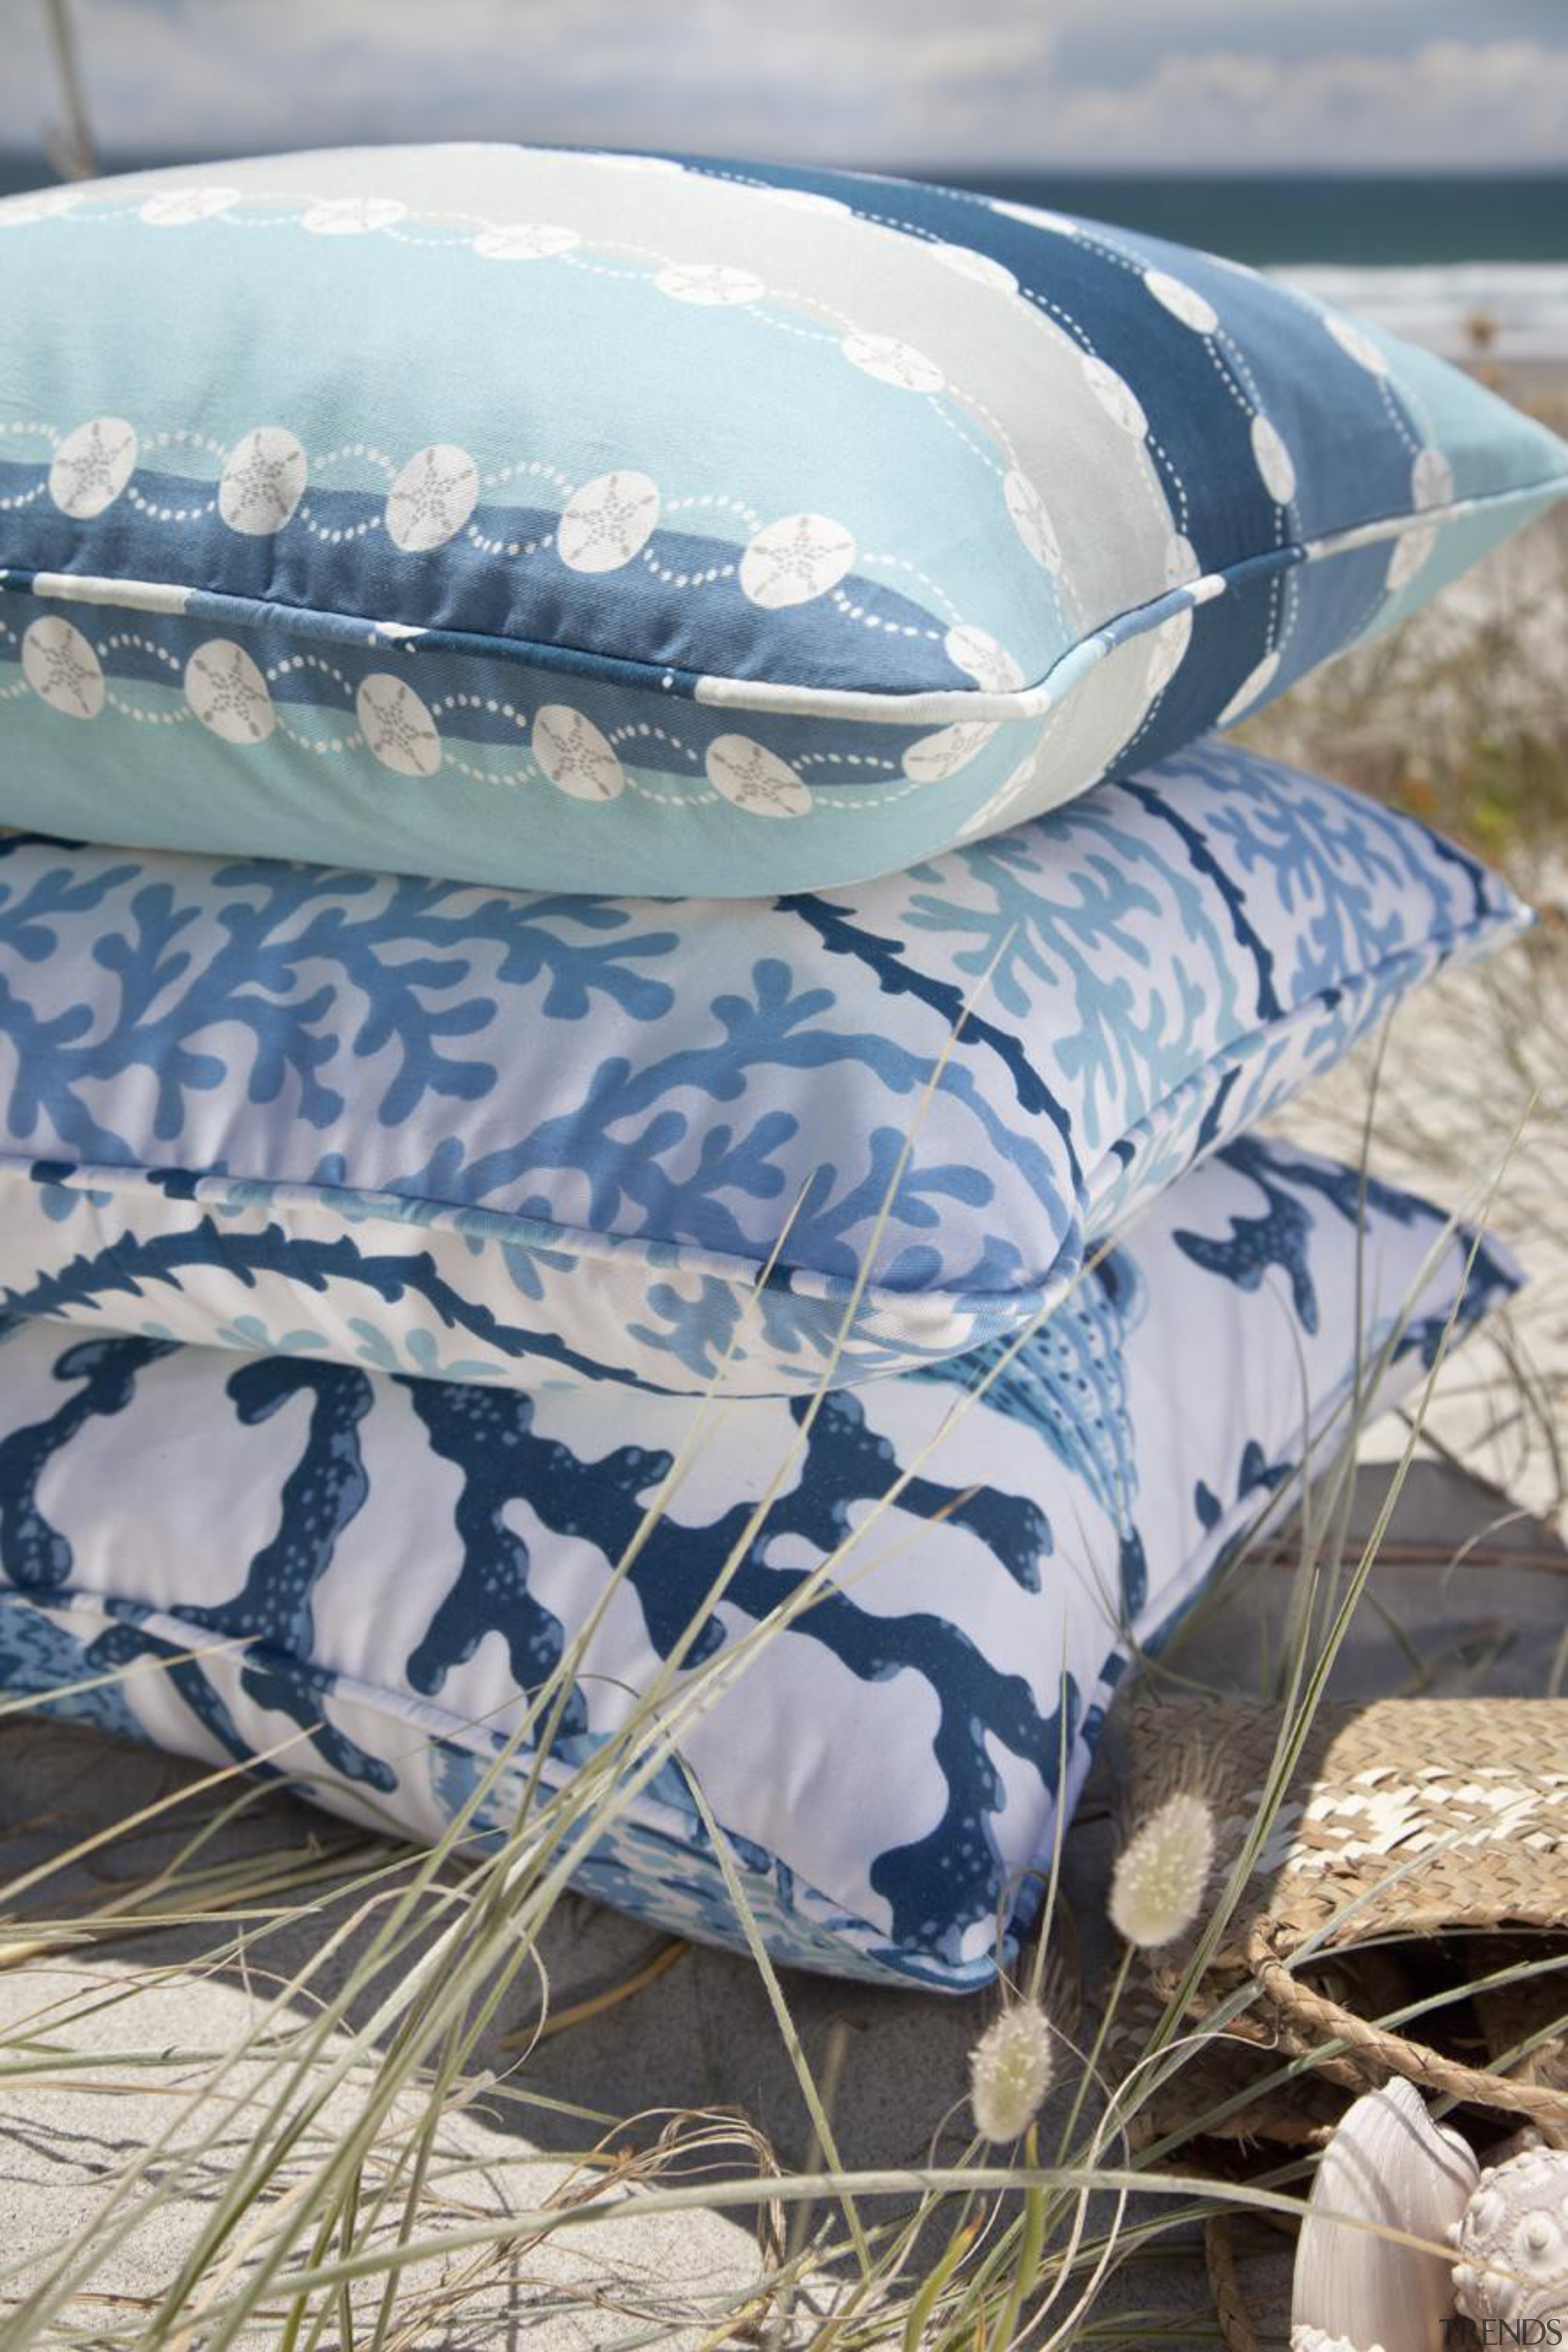 Something for summer - Maldives drapery collection bed sheet, textile, water, gray